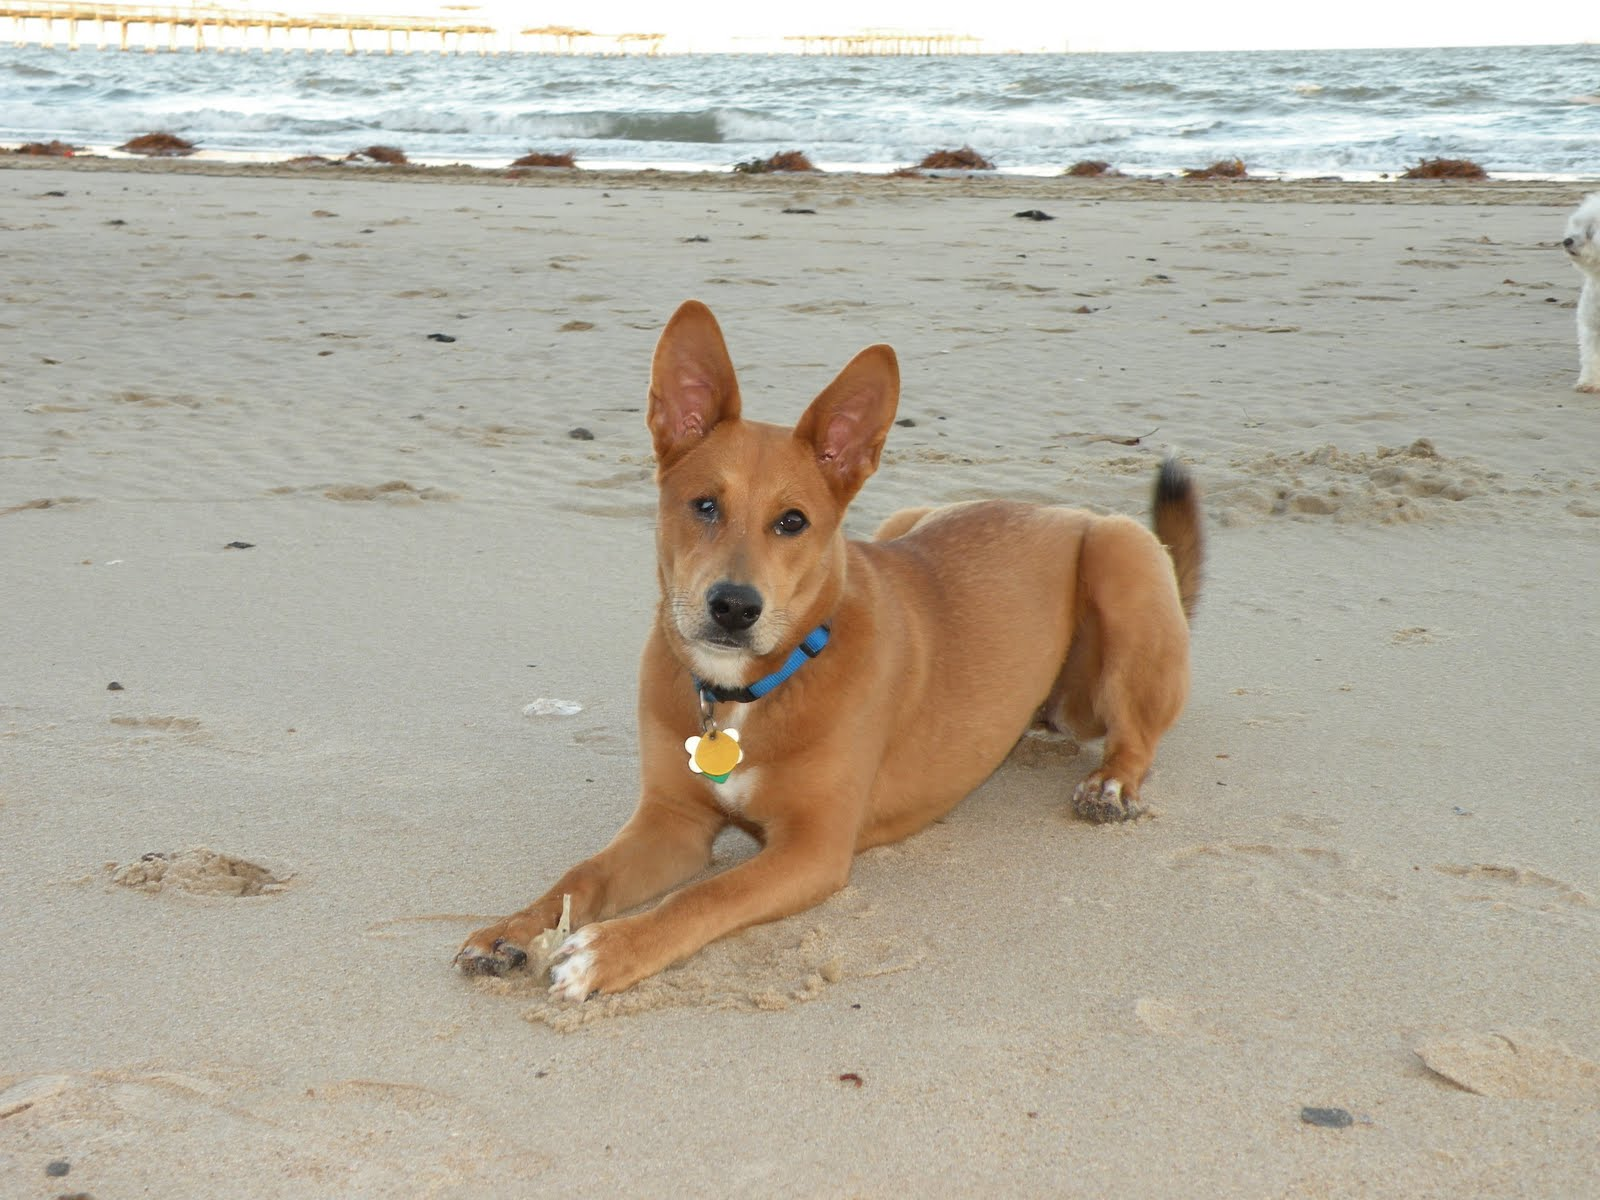 Carolina Dog on the beach wallpaper